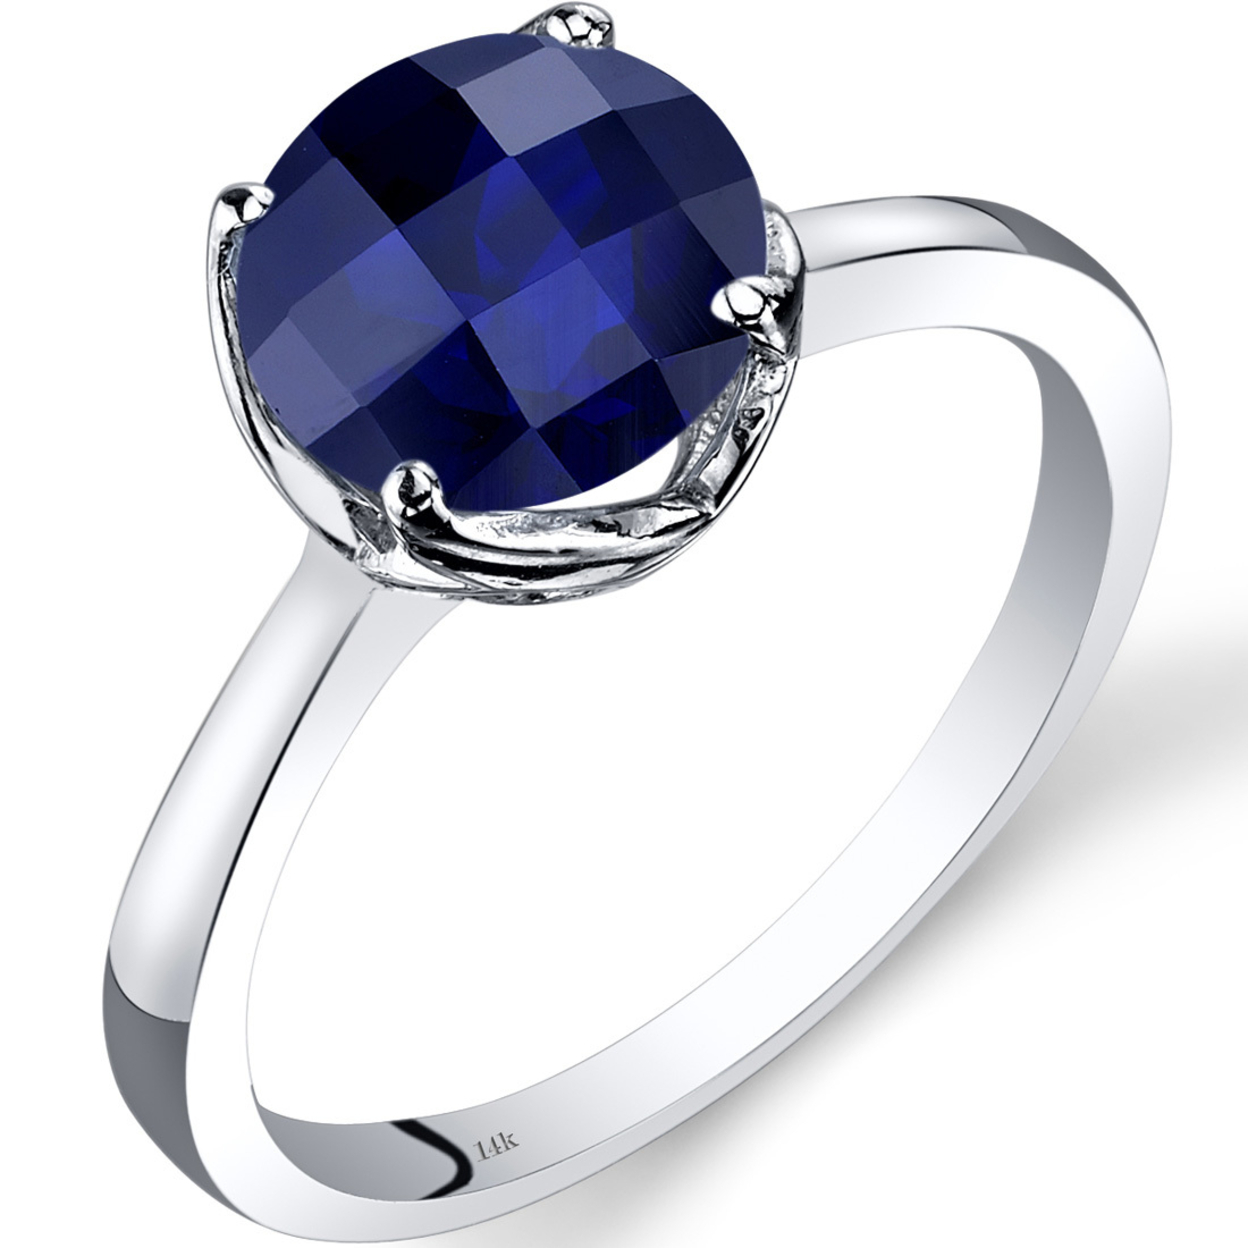 14k White Gold Created Sapphire Solitaire Ring 2.50 Carat Checkerboard Cut R62214